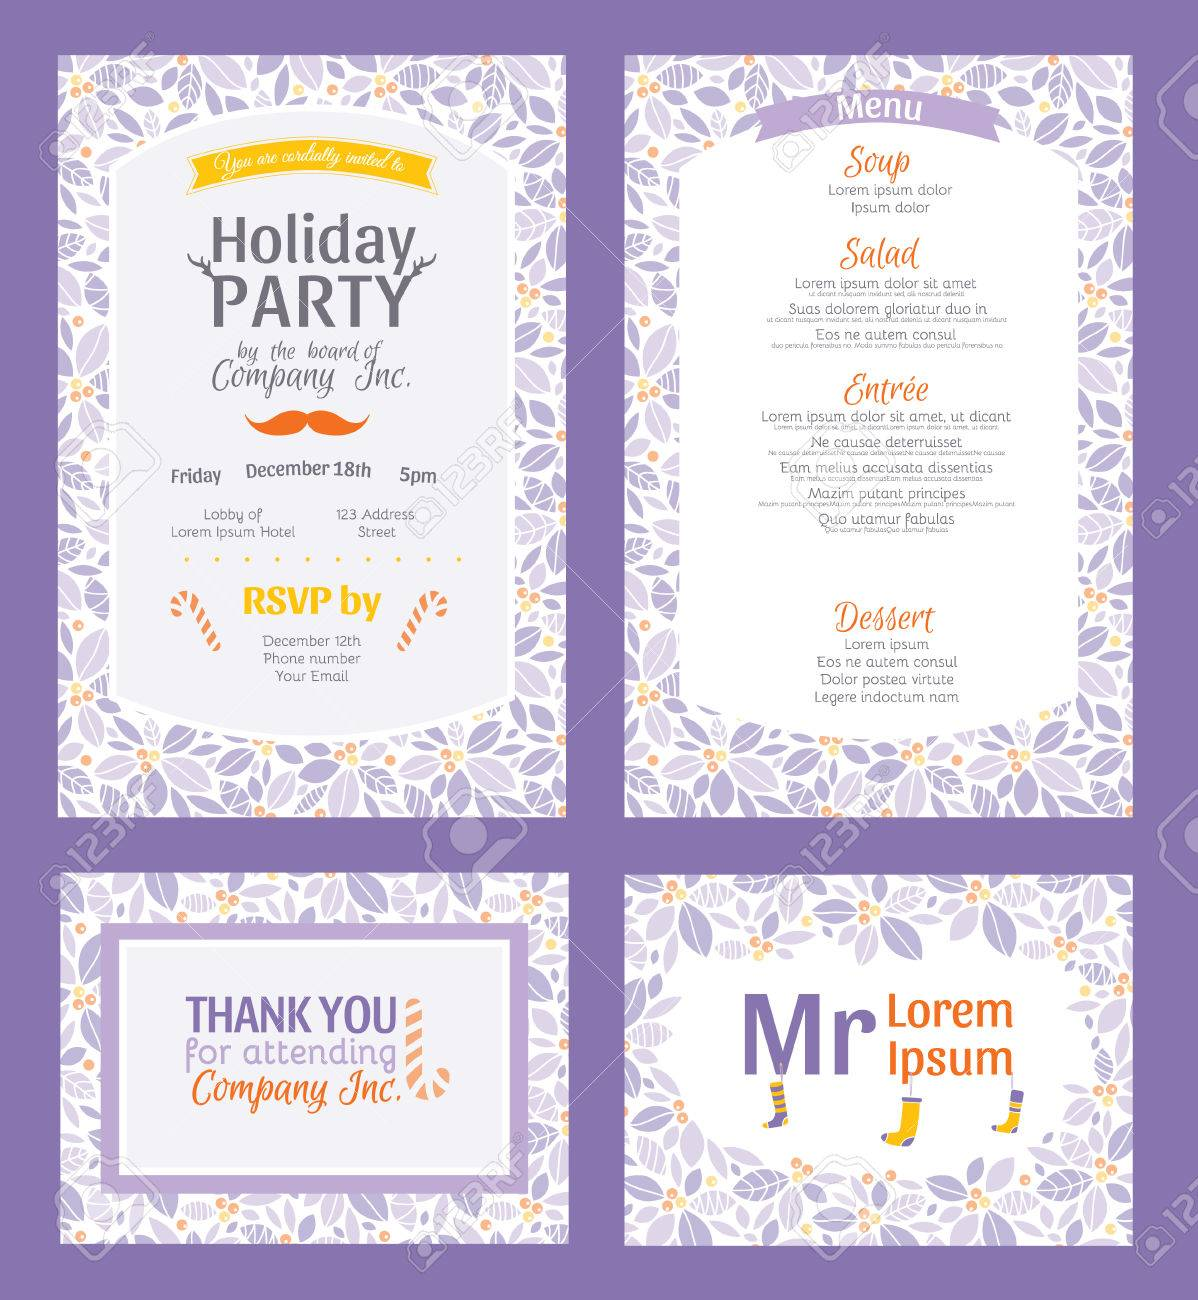 vector puprle holiday party invitation set holly berry vector vector puprle holiday party invitation set holly berry pattern frame invite menu thank you placement card graphic design